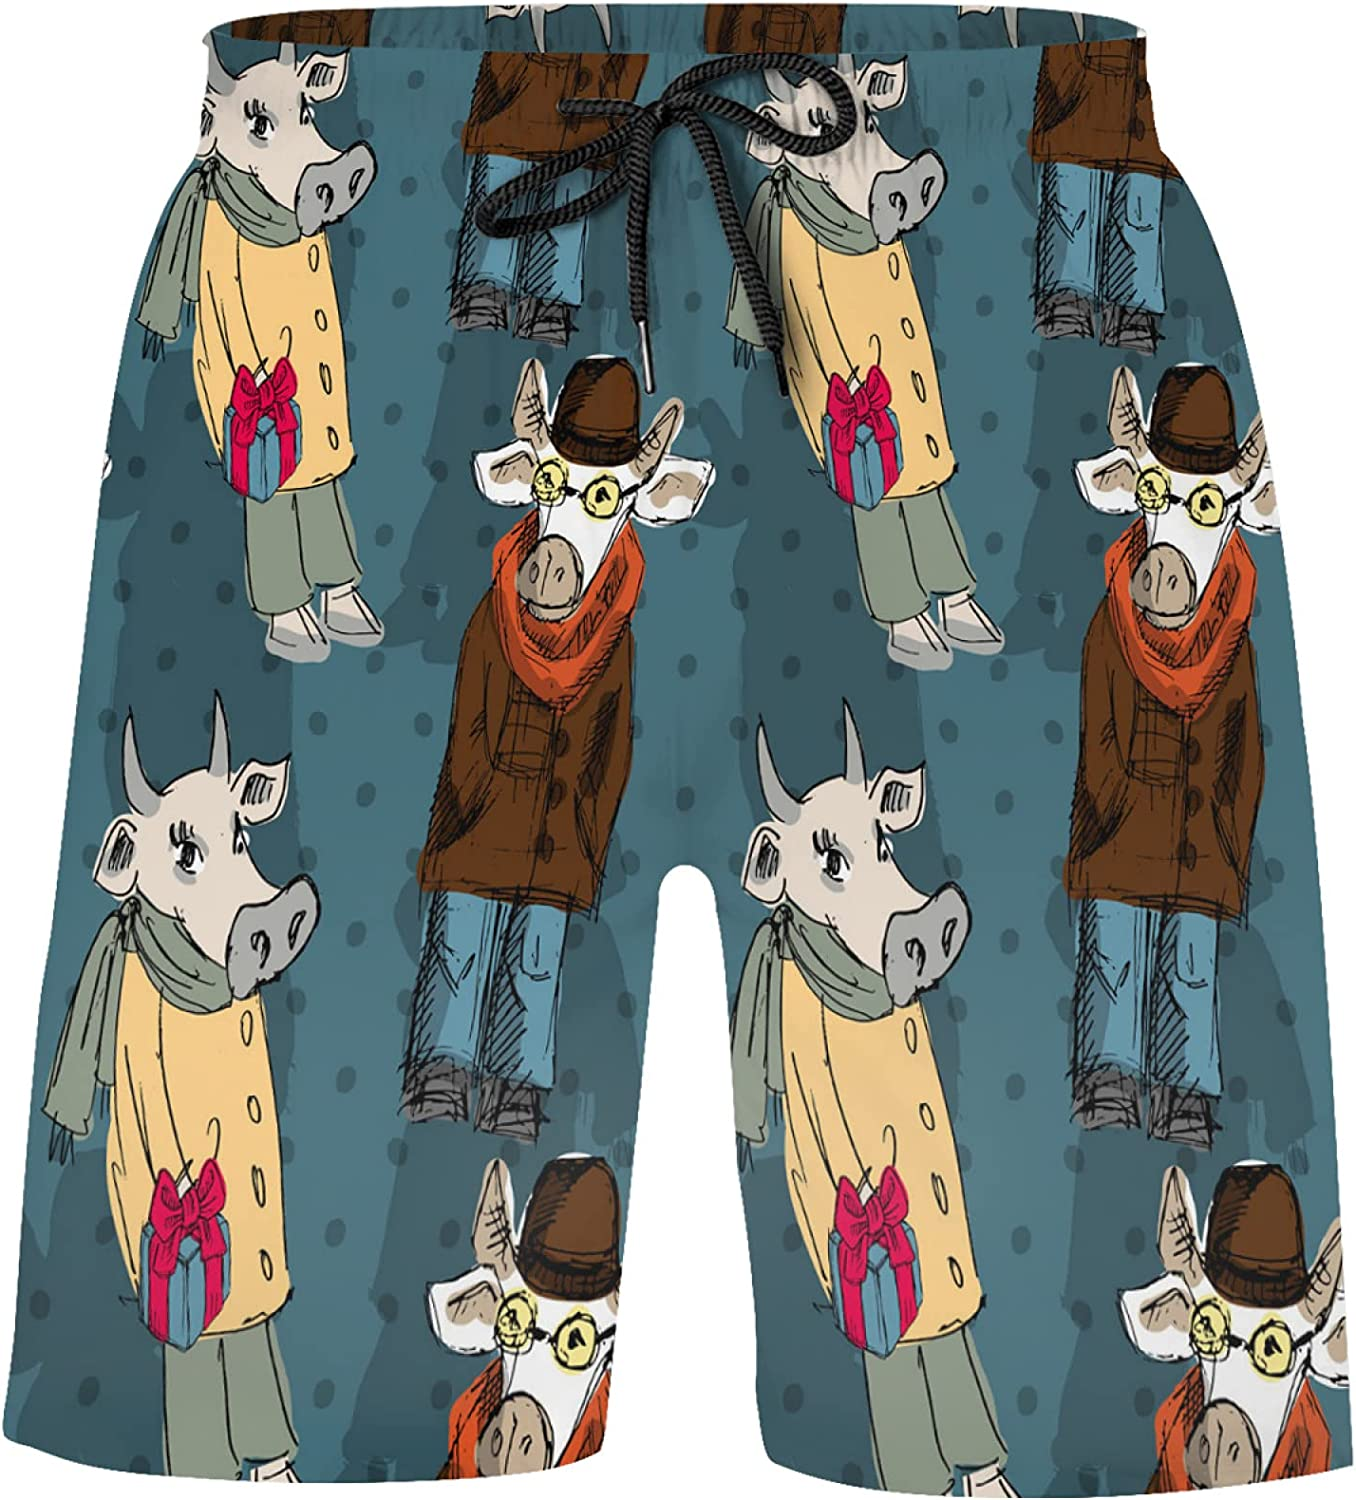 ZXZNC Funny Dressed Cows with Scarves and Hats Fashion Boys 4-Way Stretch Board Shorts Swi